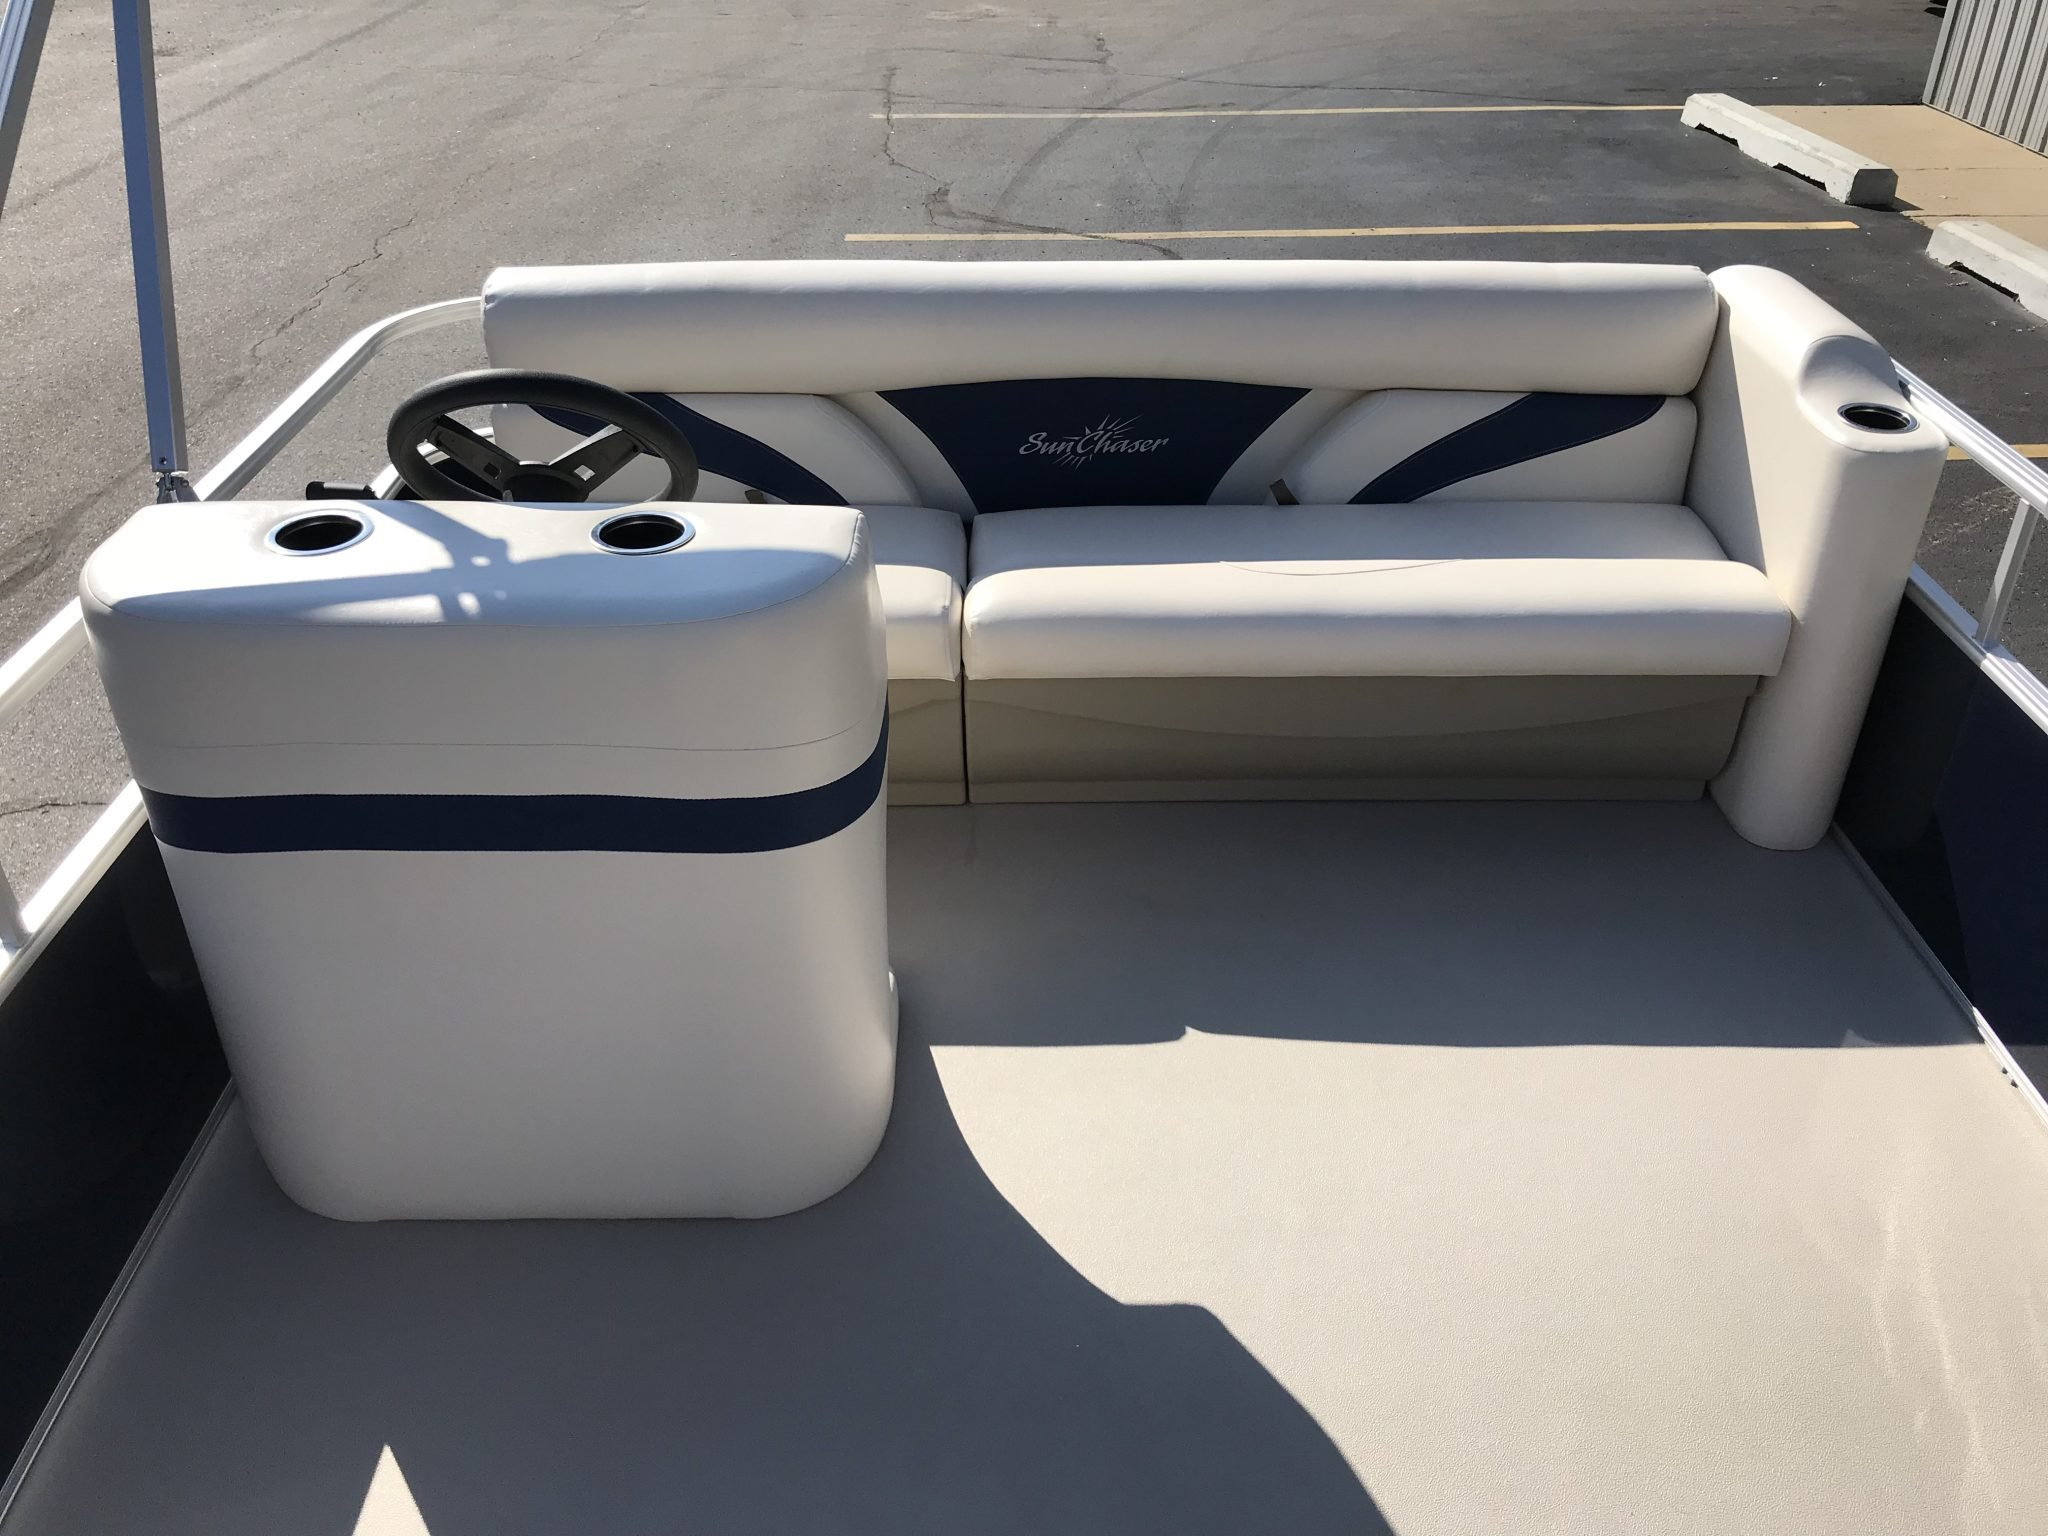 2019 SunChaser 816 Cruise Interior Cockpit Seating 1